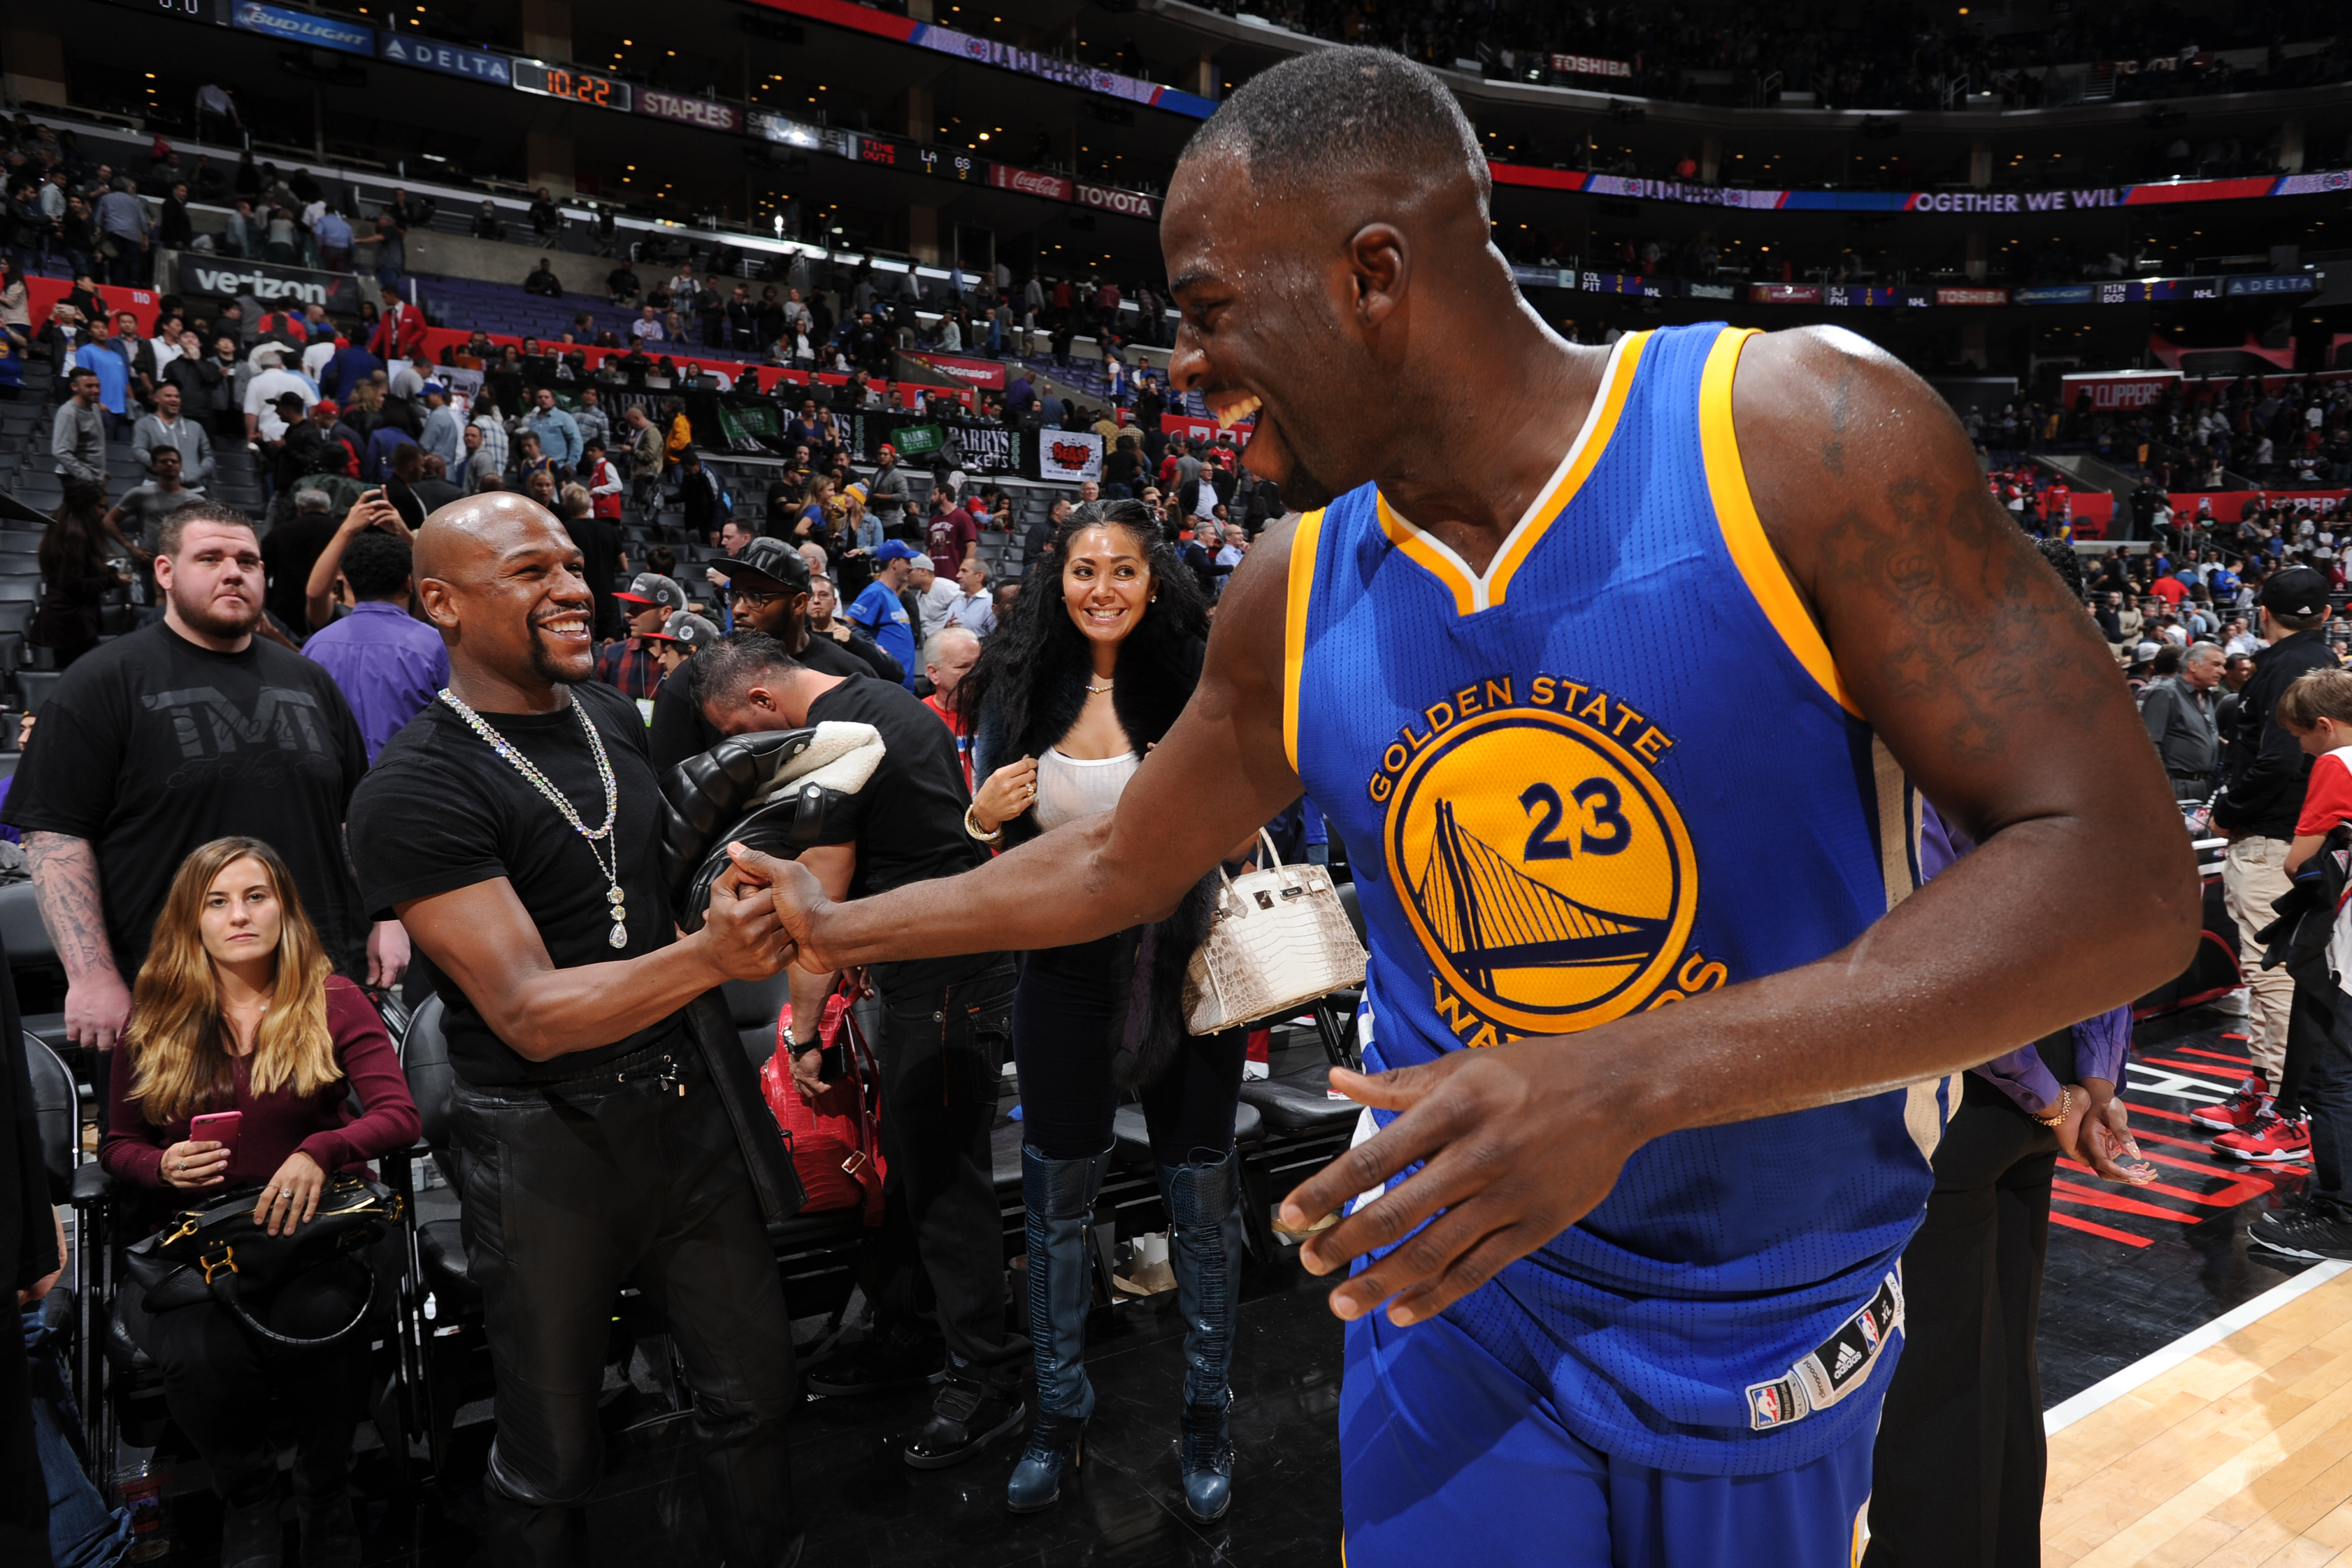 498988366-golden-state-warriors-v-los-angeles-clippers.jpg